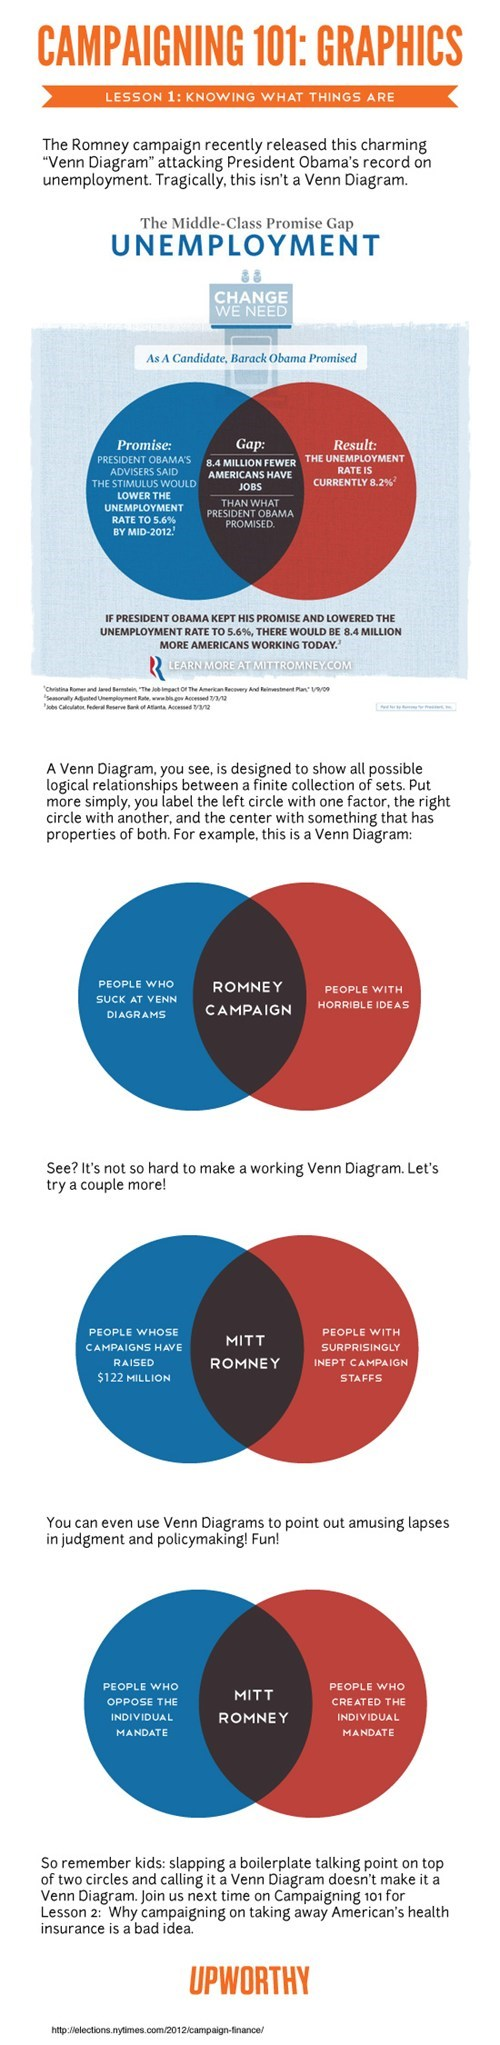 best of week,misused,Mitt Romney,obama,politics,venn diagrams